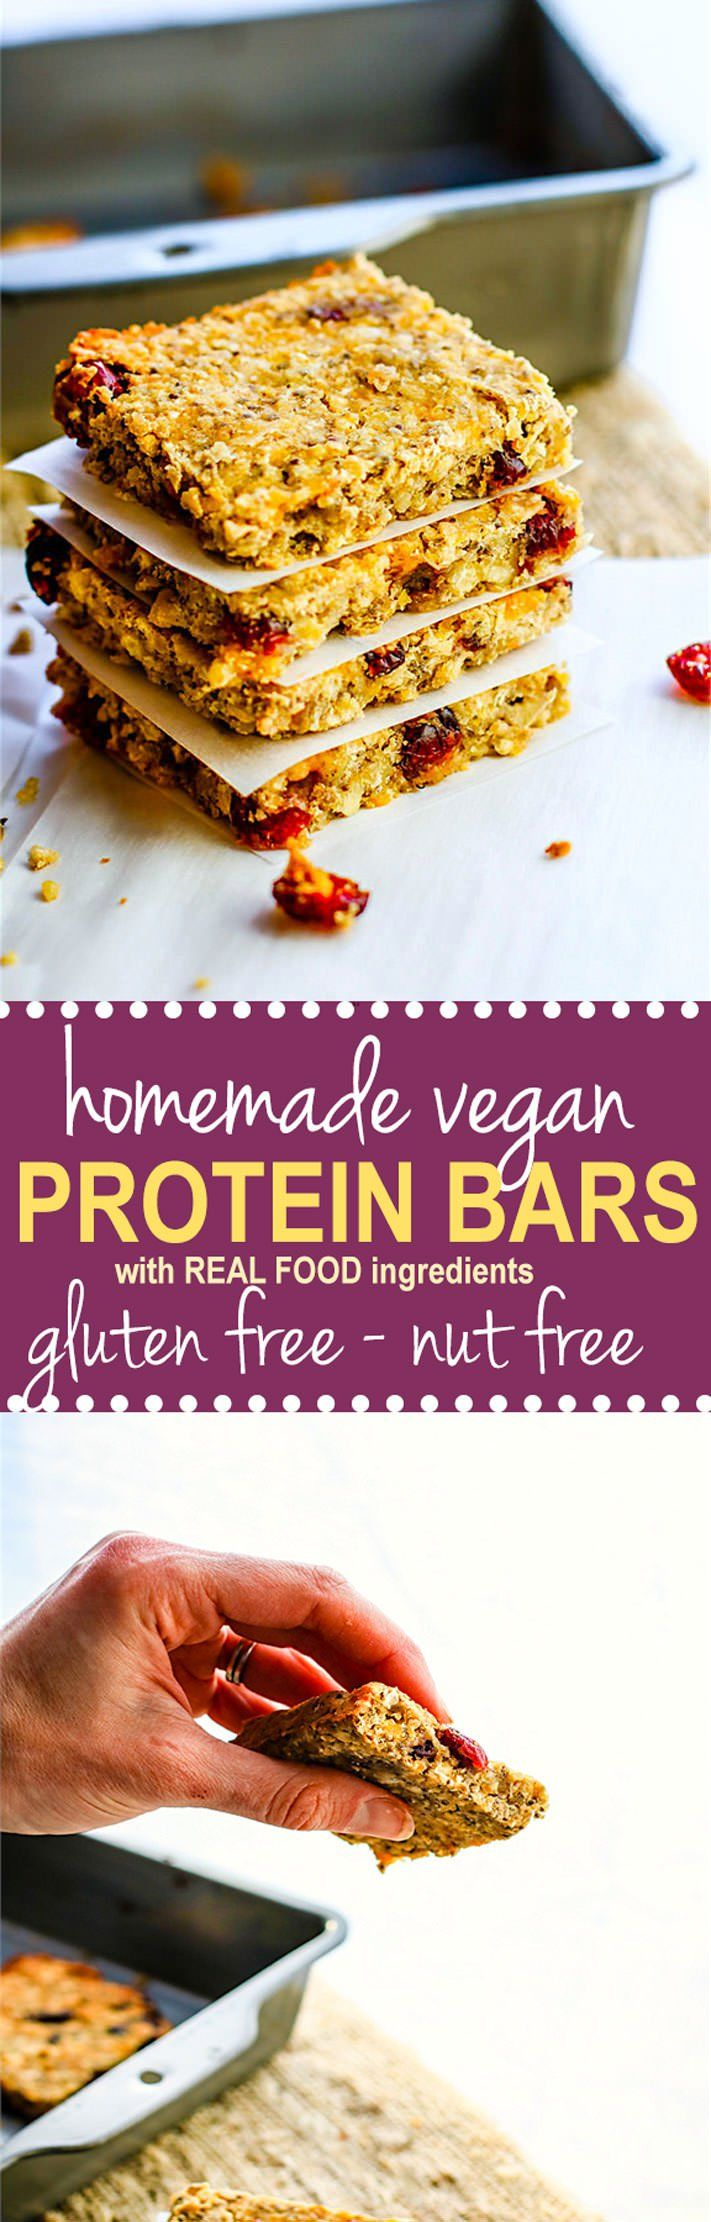 Vegan Protein Bars - No protein Powder Needed! Gluten free and nut free vegan protein bars made with simple wholesome protein rich ingredients. Delicious and easy to make!